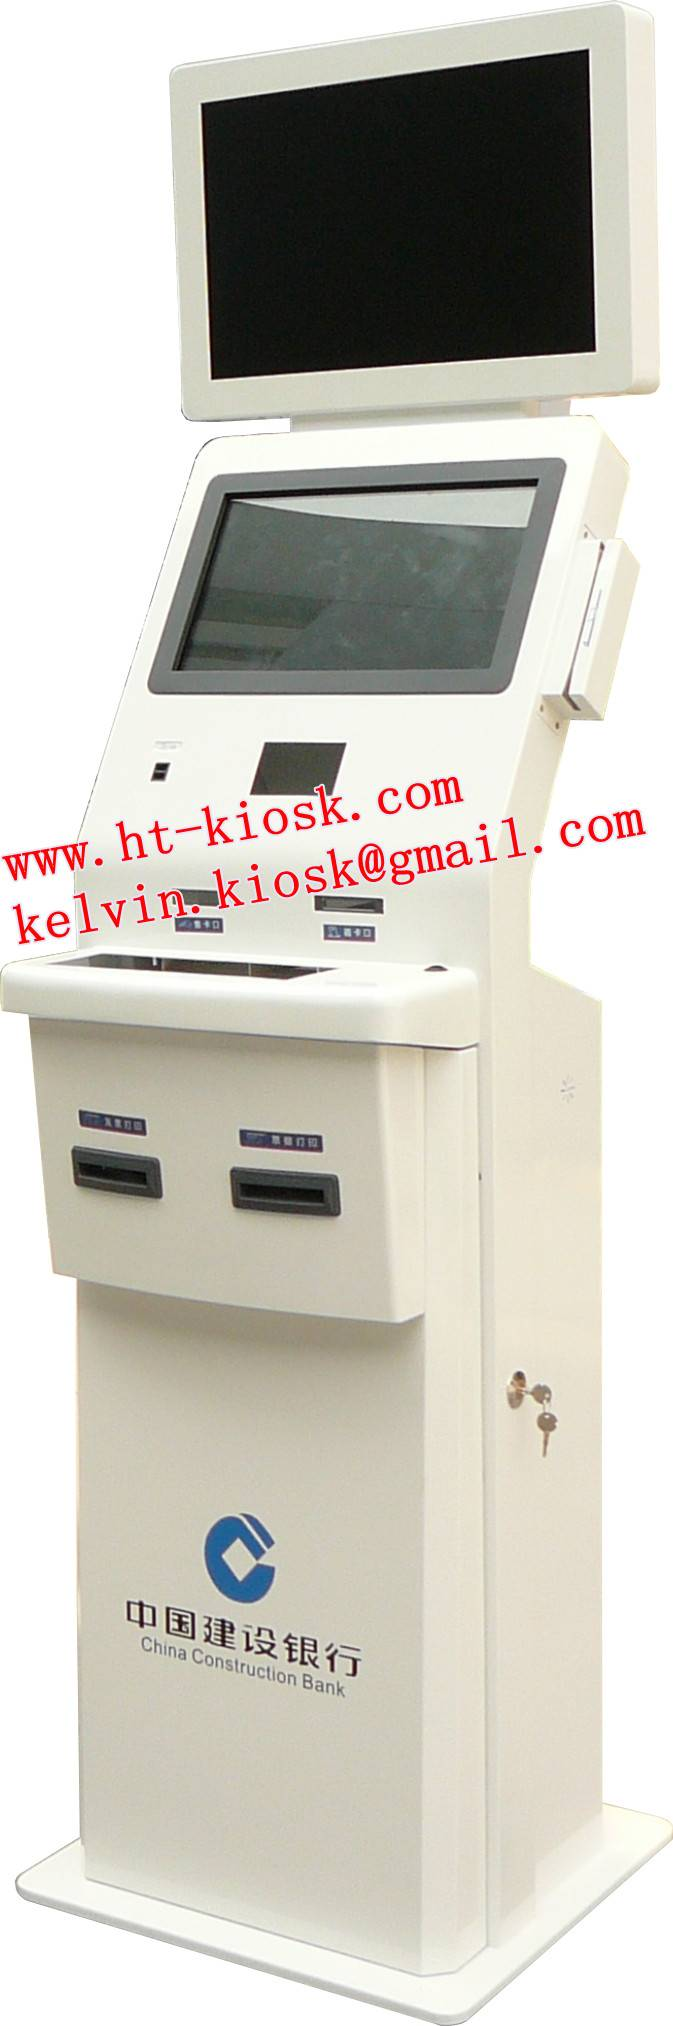 Dual Touch Screen Payment Kiosks